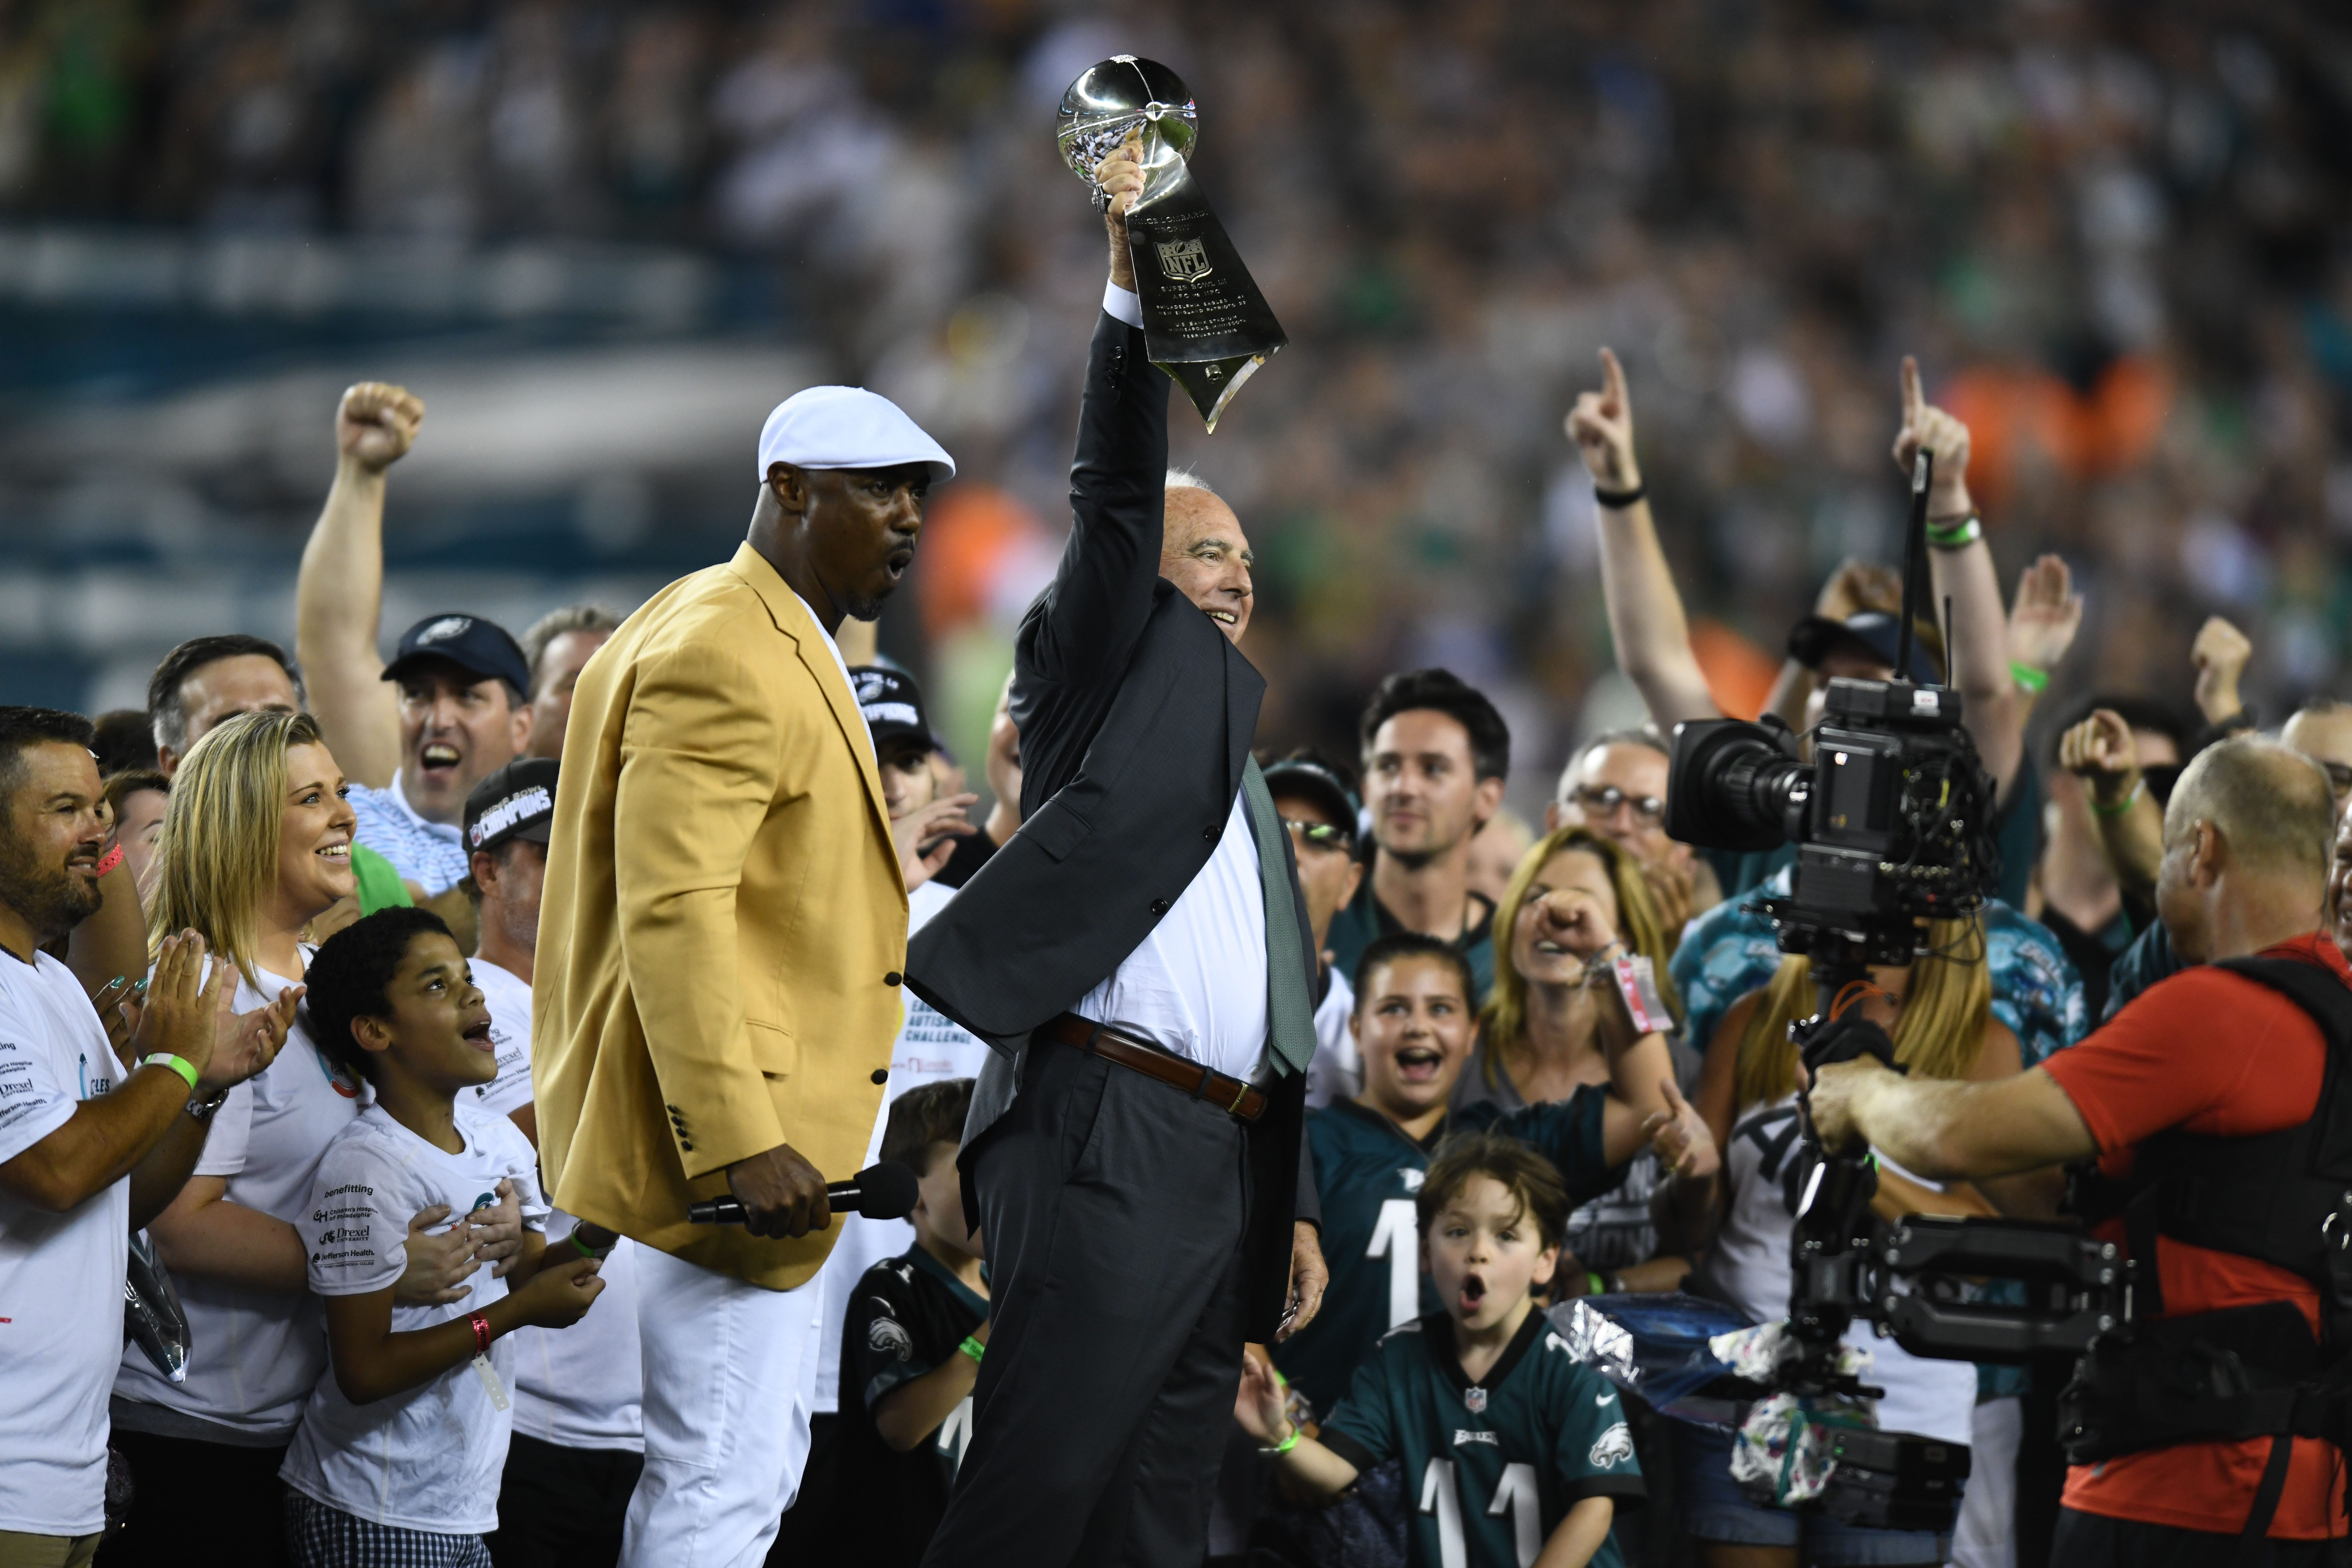 Philadelphia Eagles owner Jeffrey Lurie holds up the Lombardi Trophy as Hall of Fame safety Brian Dawkins reacts during the pregame celebration of the Super Bowl LII championship at Lincoln Financial Field. - Packers QB Carted Off In Clash With Bears